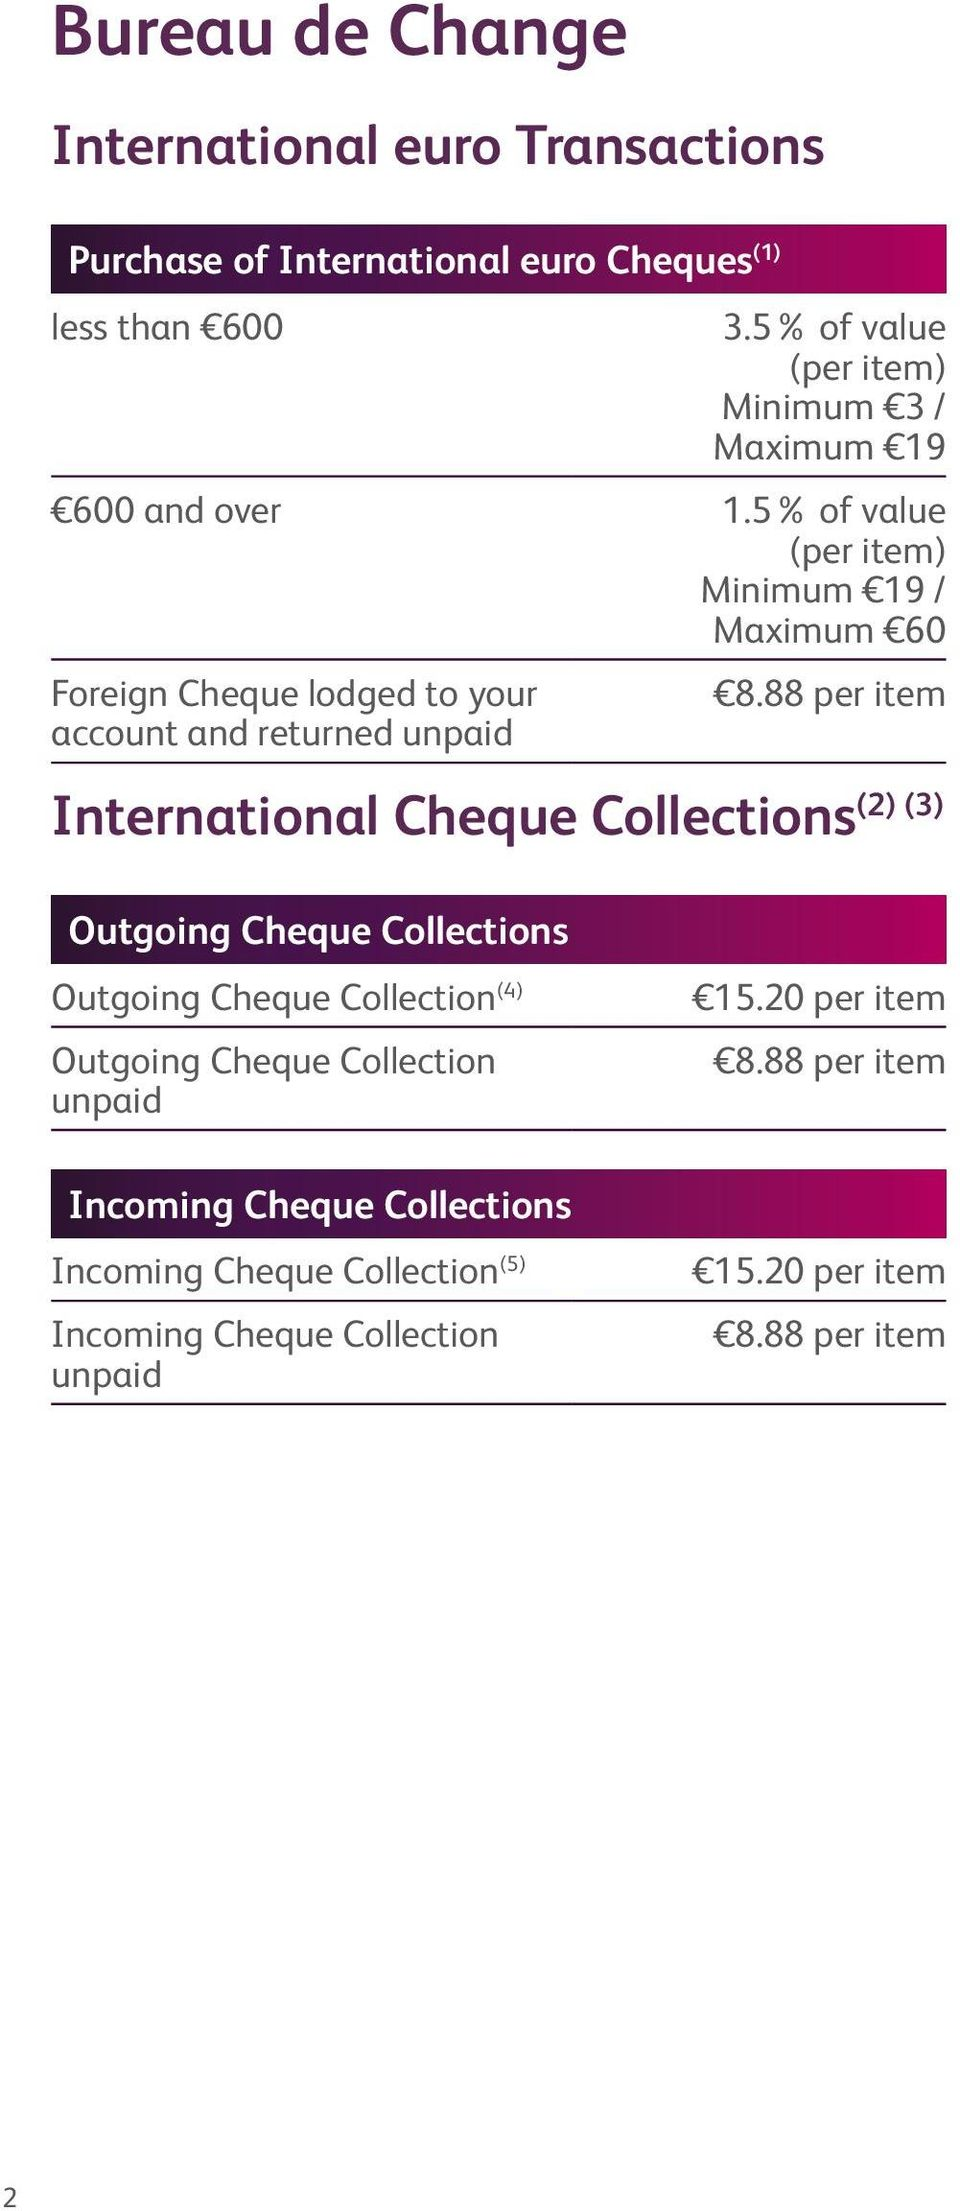 5% of value (per item) Minimum 19 / Maximum 60 Foreign Cheque lodged to your account and returned unpaid 8.